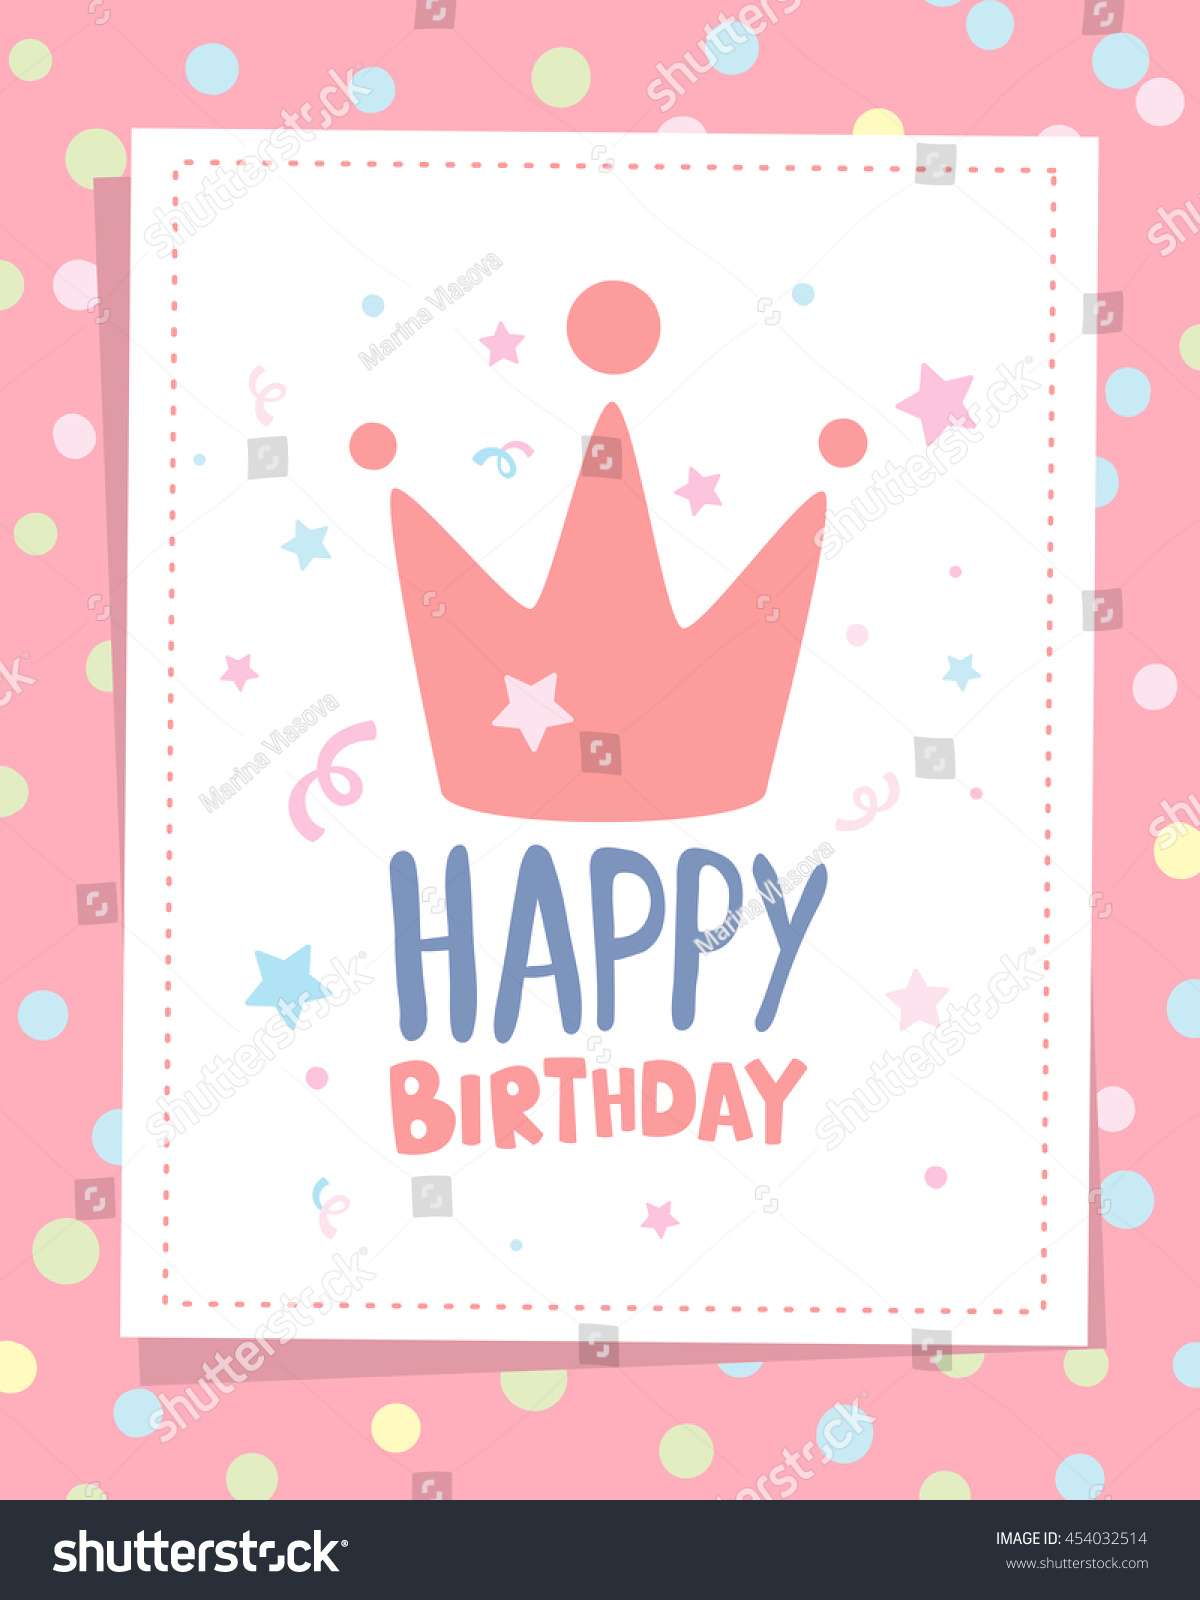 happy birthday crown template - vector colorful illustration happy birthday template stock